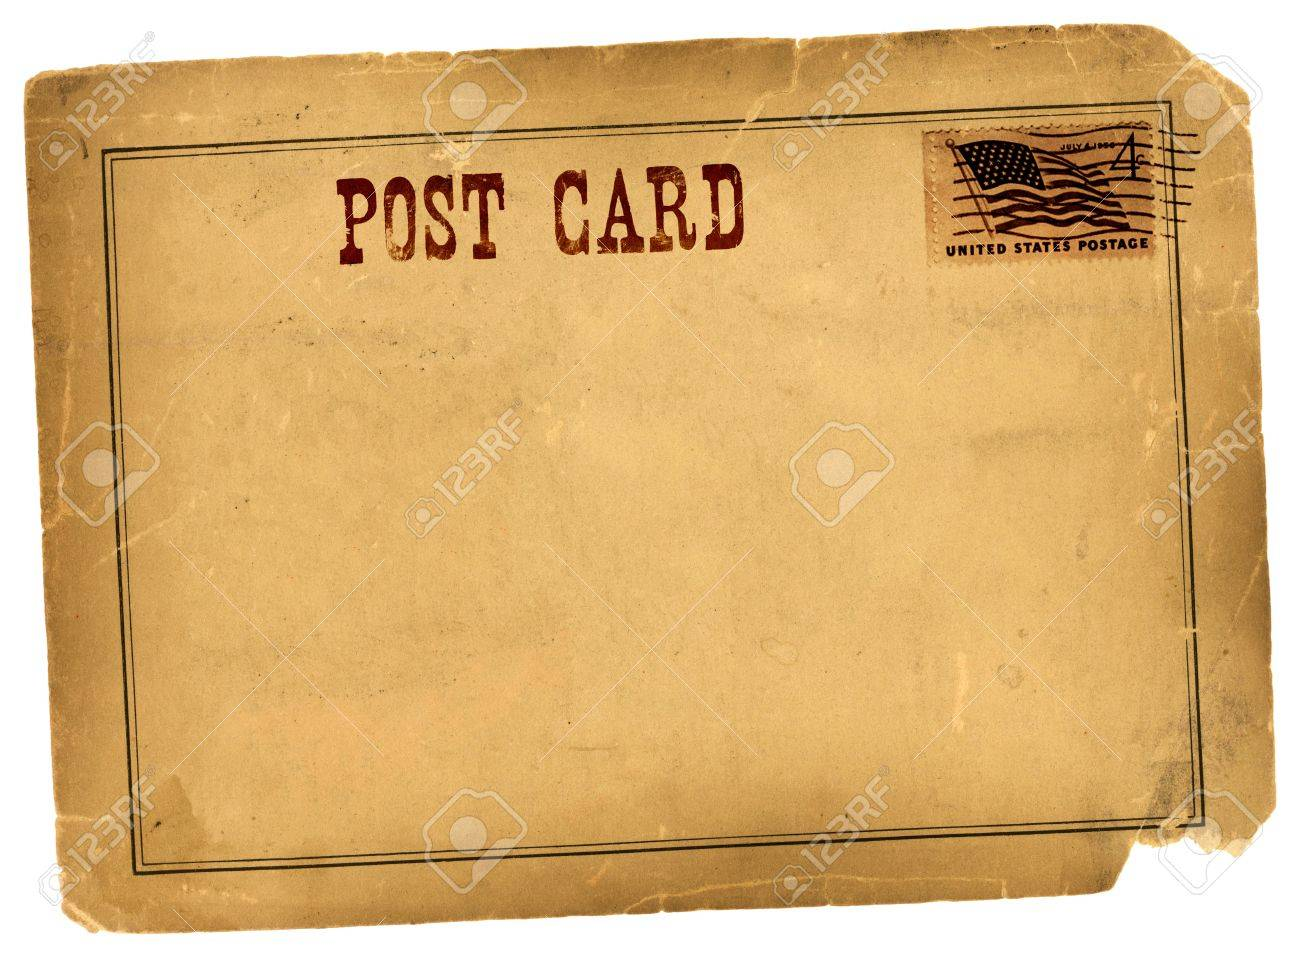 Vintage postcard grungy background template made from real antique vintage postcard grungy background template made from real antique 1800s paper stock photo 21613693 pronofoot35fo Image collections